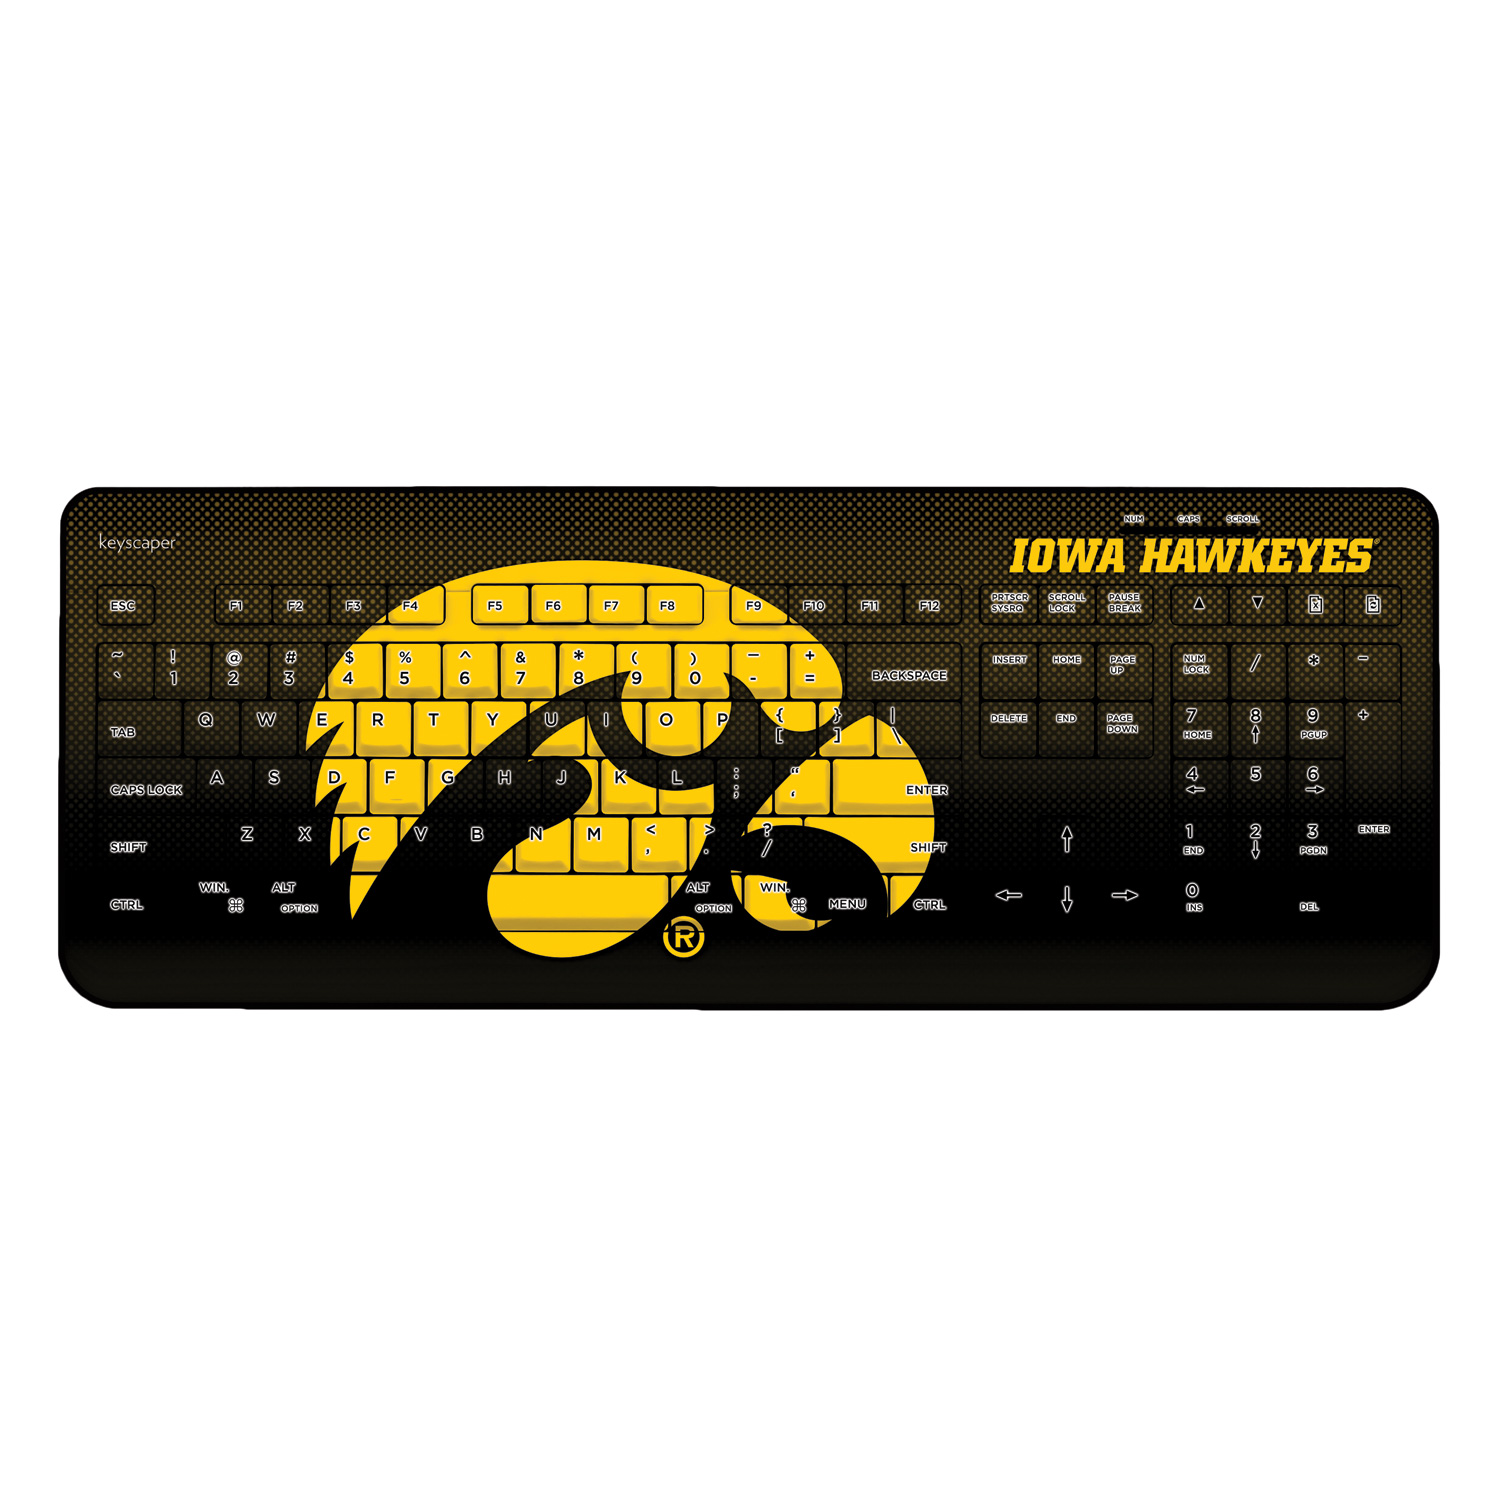 Iowa Hawkeyes Wireless USB Keyboard NCAA